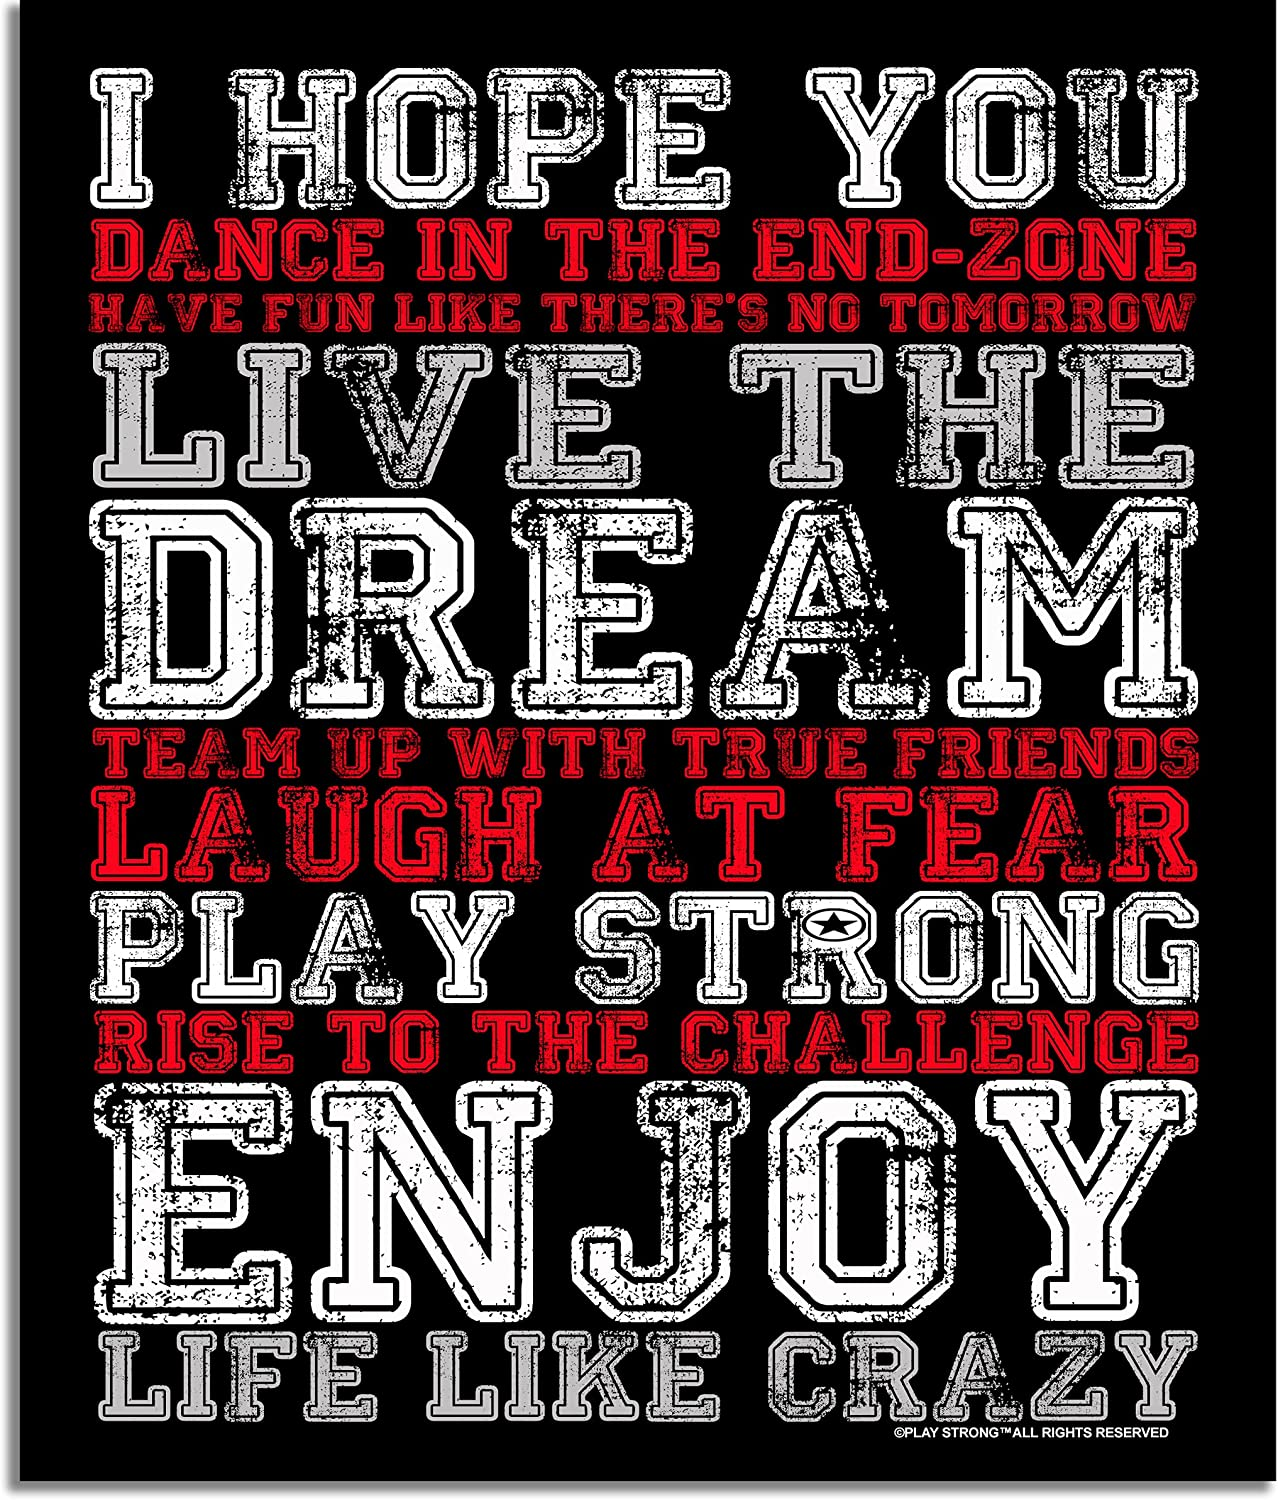 Play Strong I Hope You Iconic Maximum Motivation Poster Giant XL Size 20in x 24in Premium Poster Paper Super Inspirational For All Walls Office, Locker Rooms, Workout Gyms, Break Rooms, Team Walls, Athlete's Room, Coach's Office